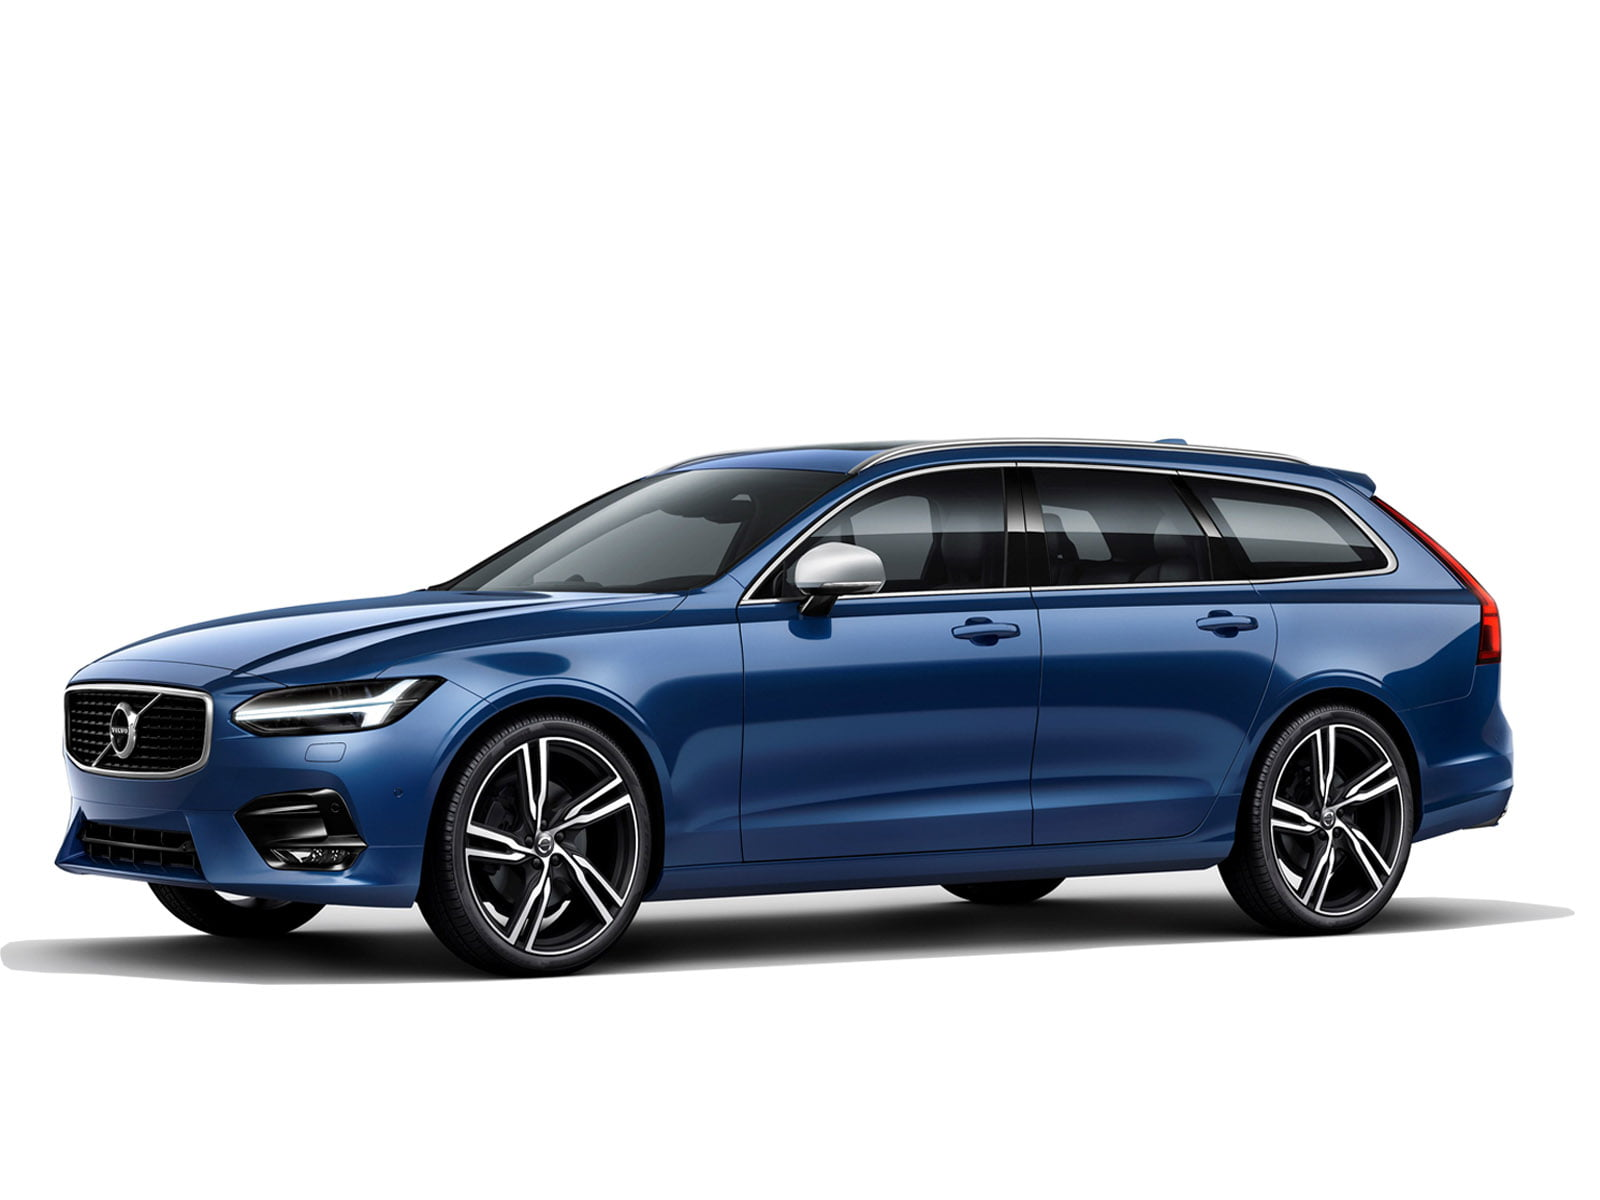 Volvo V90 T4 Geartronic Momentum Pro 5d.